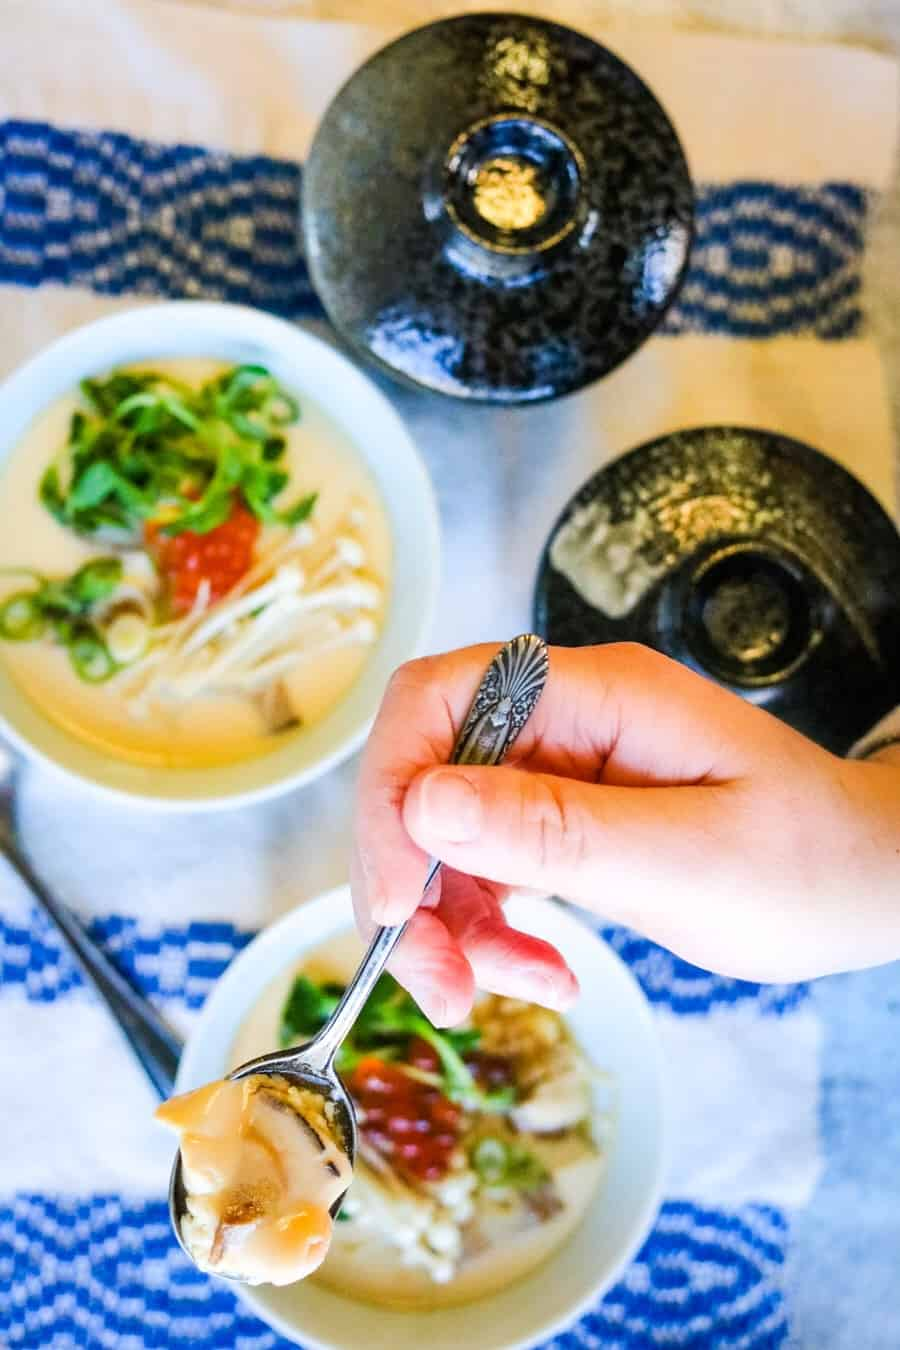 Magical Chawanmushi (Japanese Savory Egg Custard)